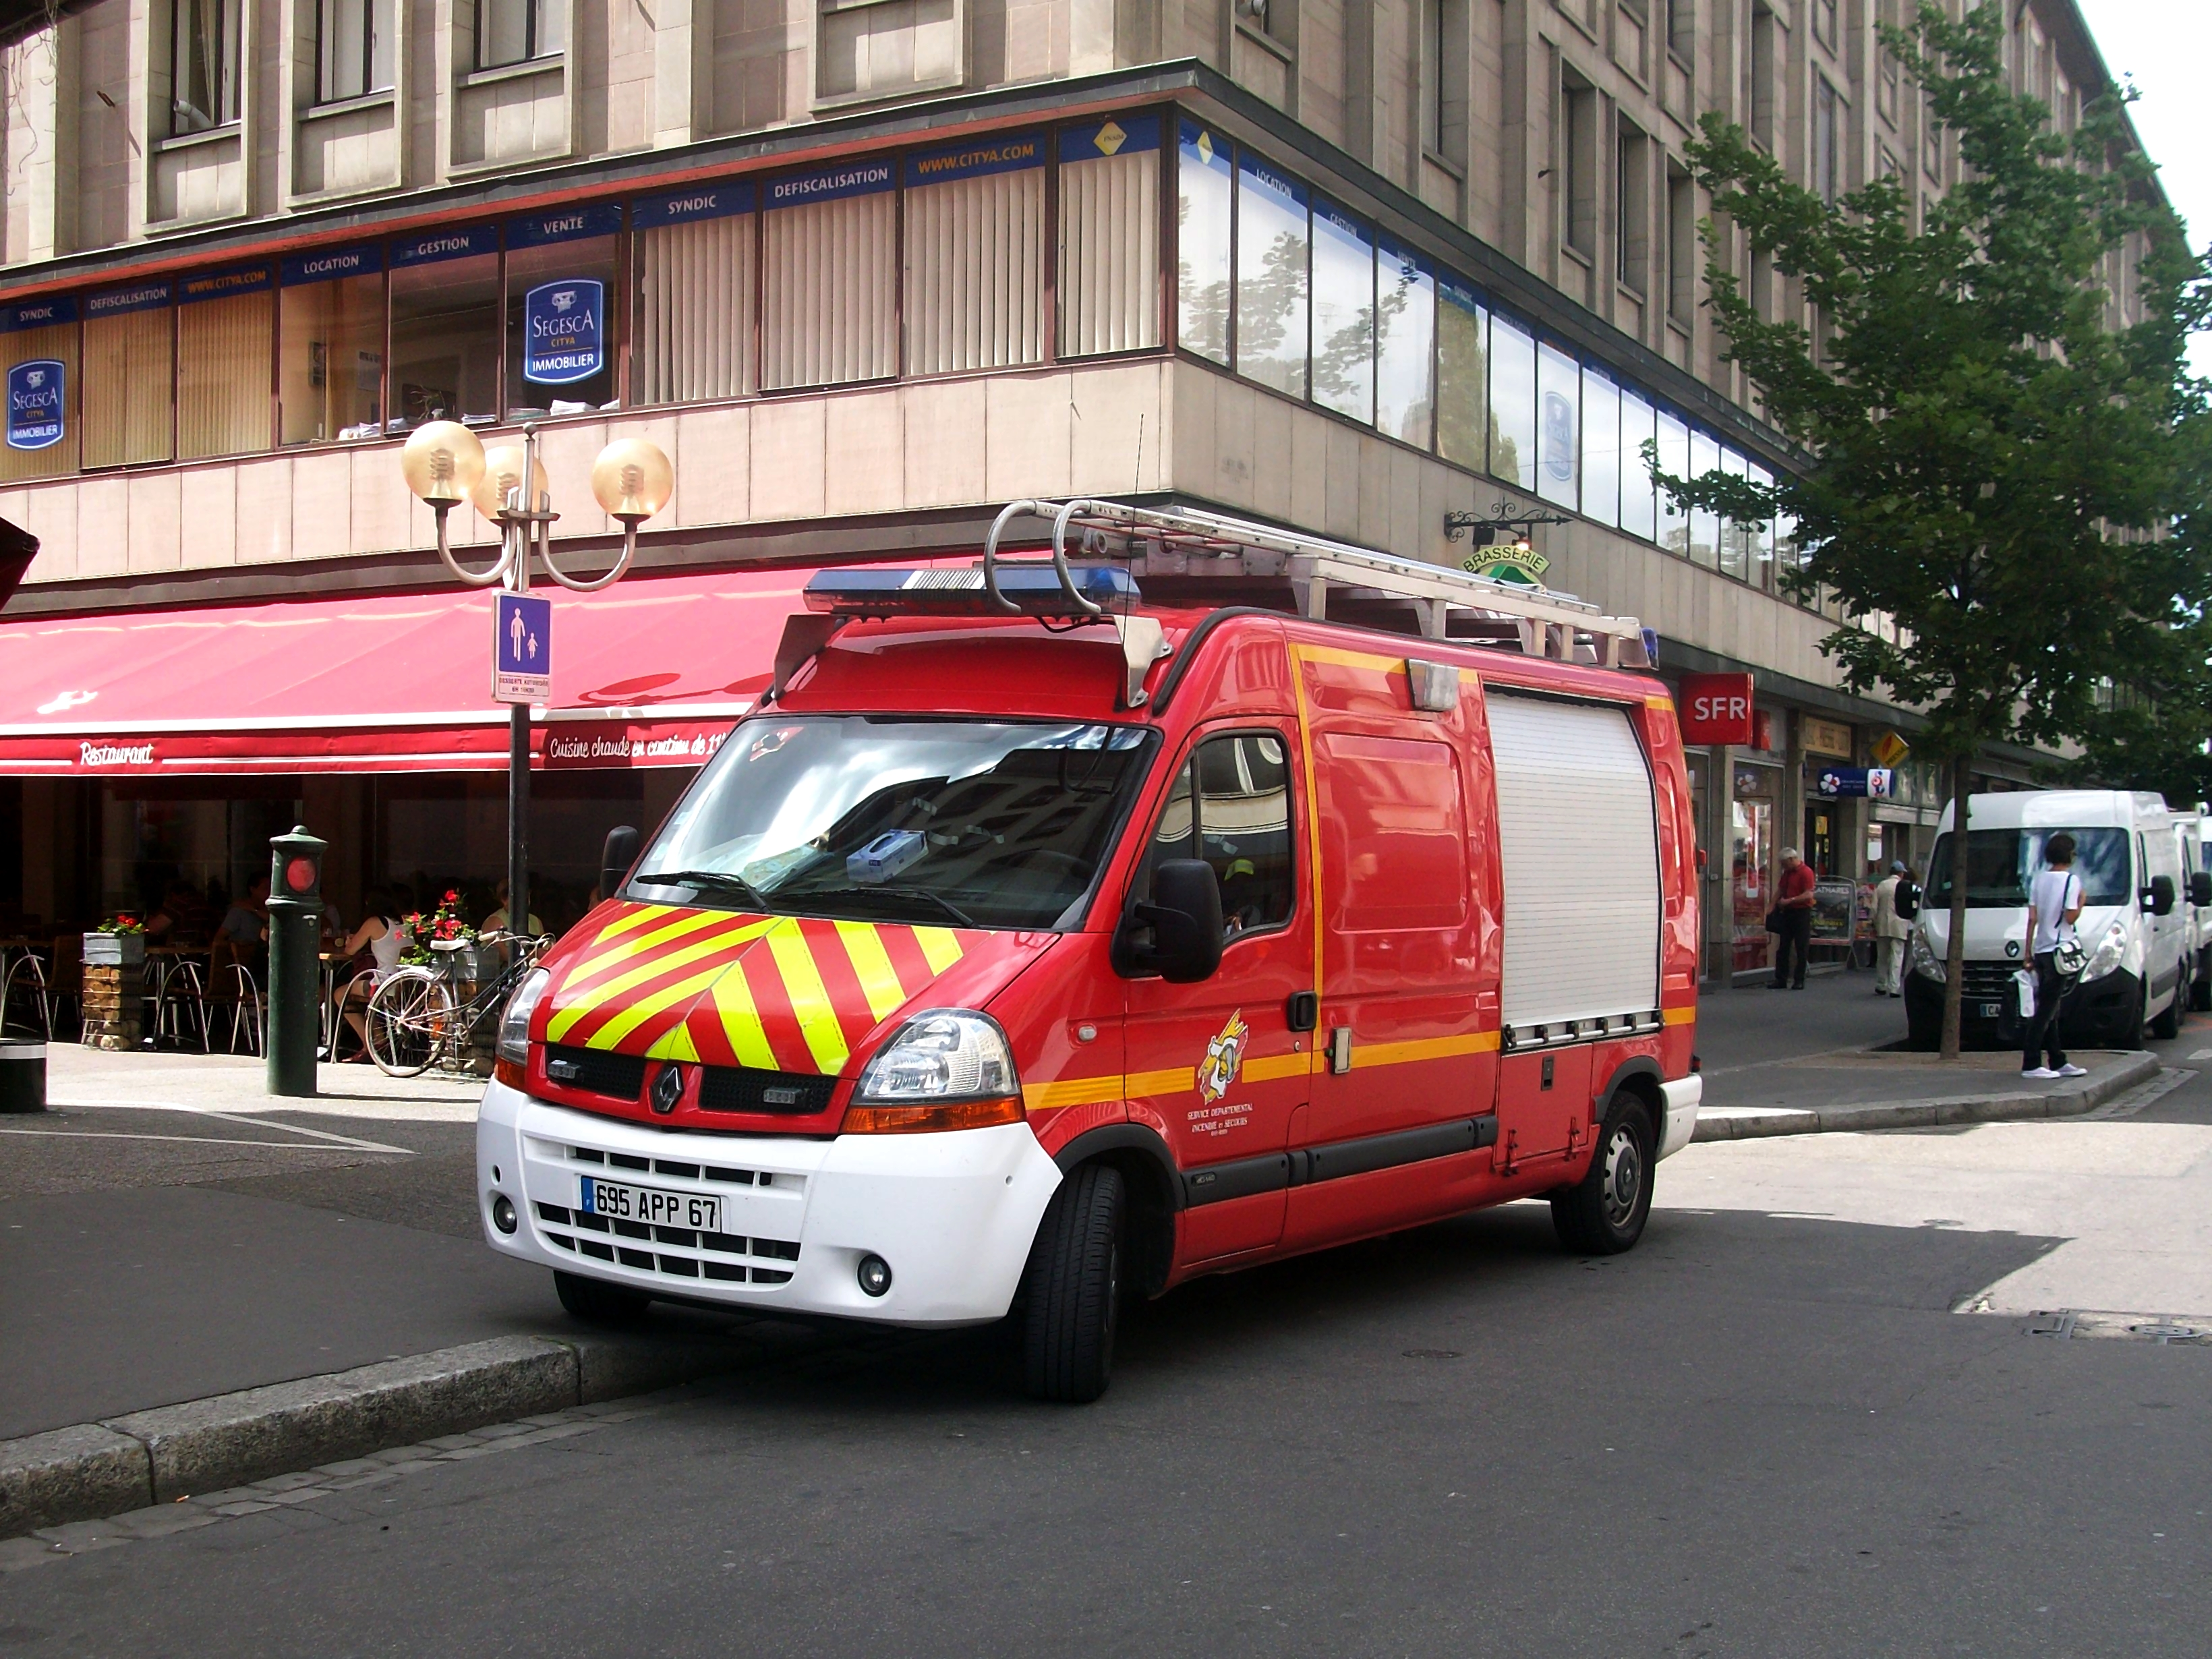 file renault master sapeur pompiers strasbourg 2012 jpg wikimedia commons. Black Bedroom Furniture Sets. Home Design Ideas